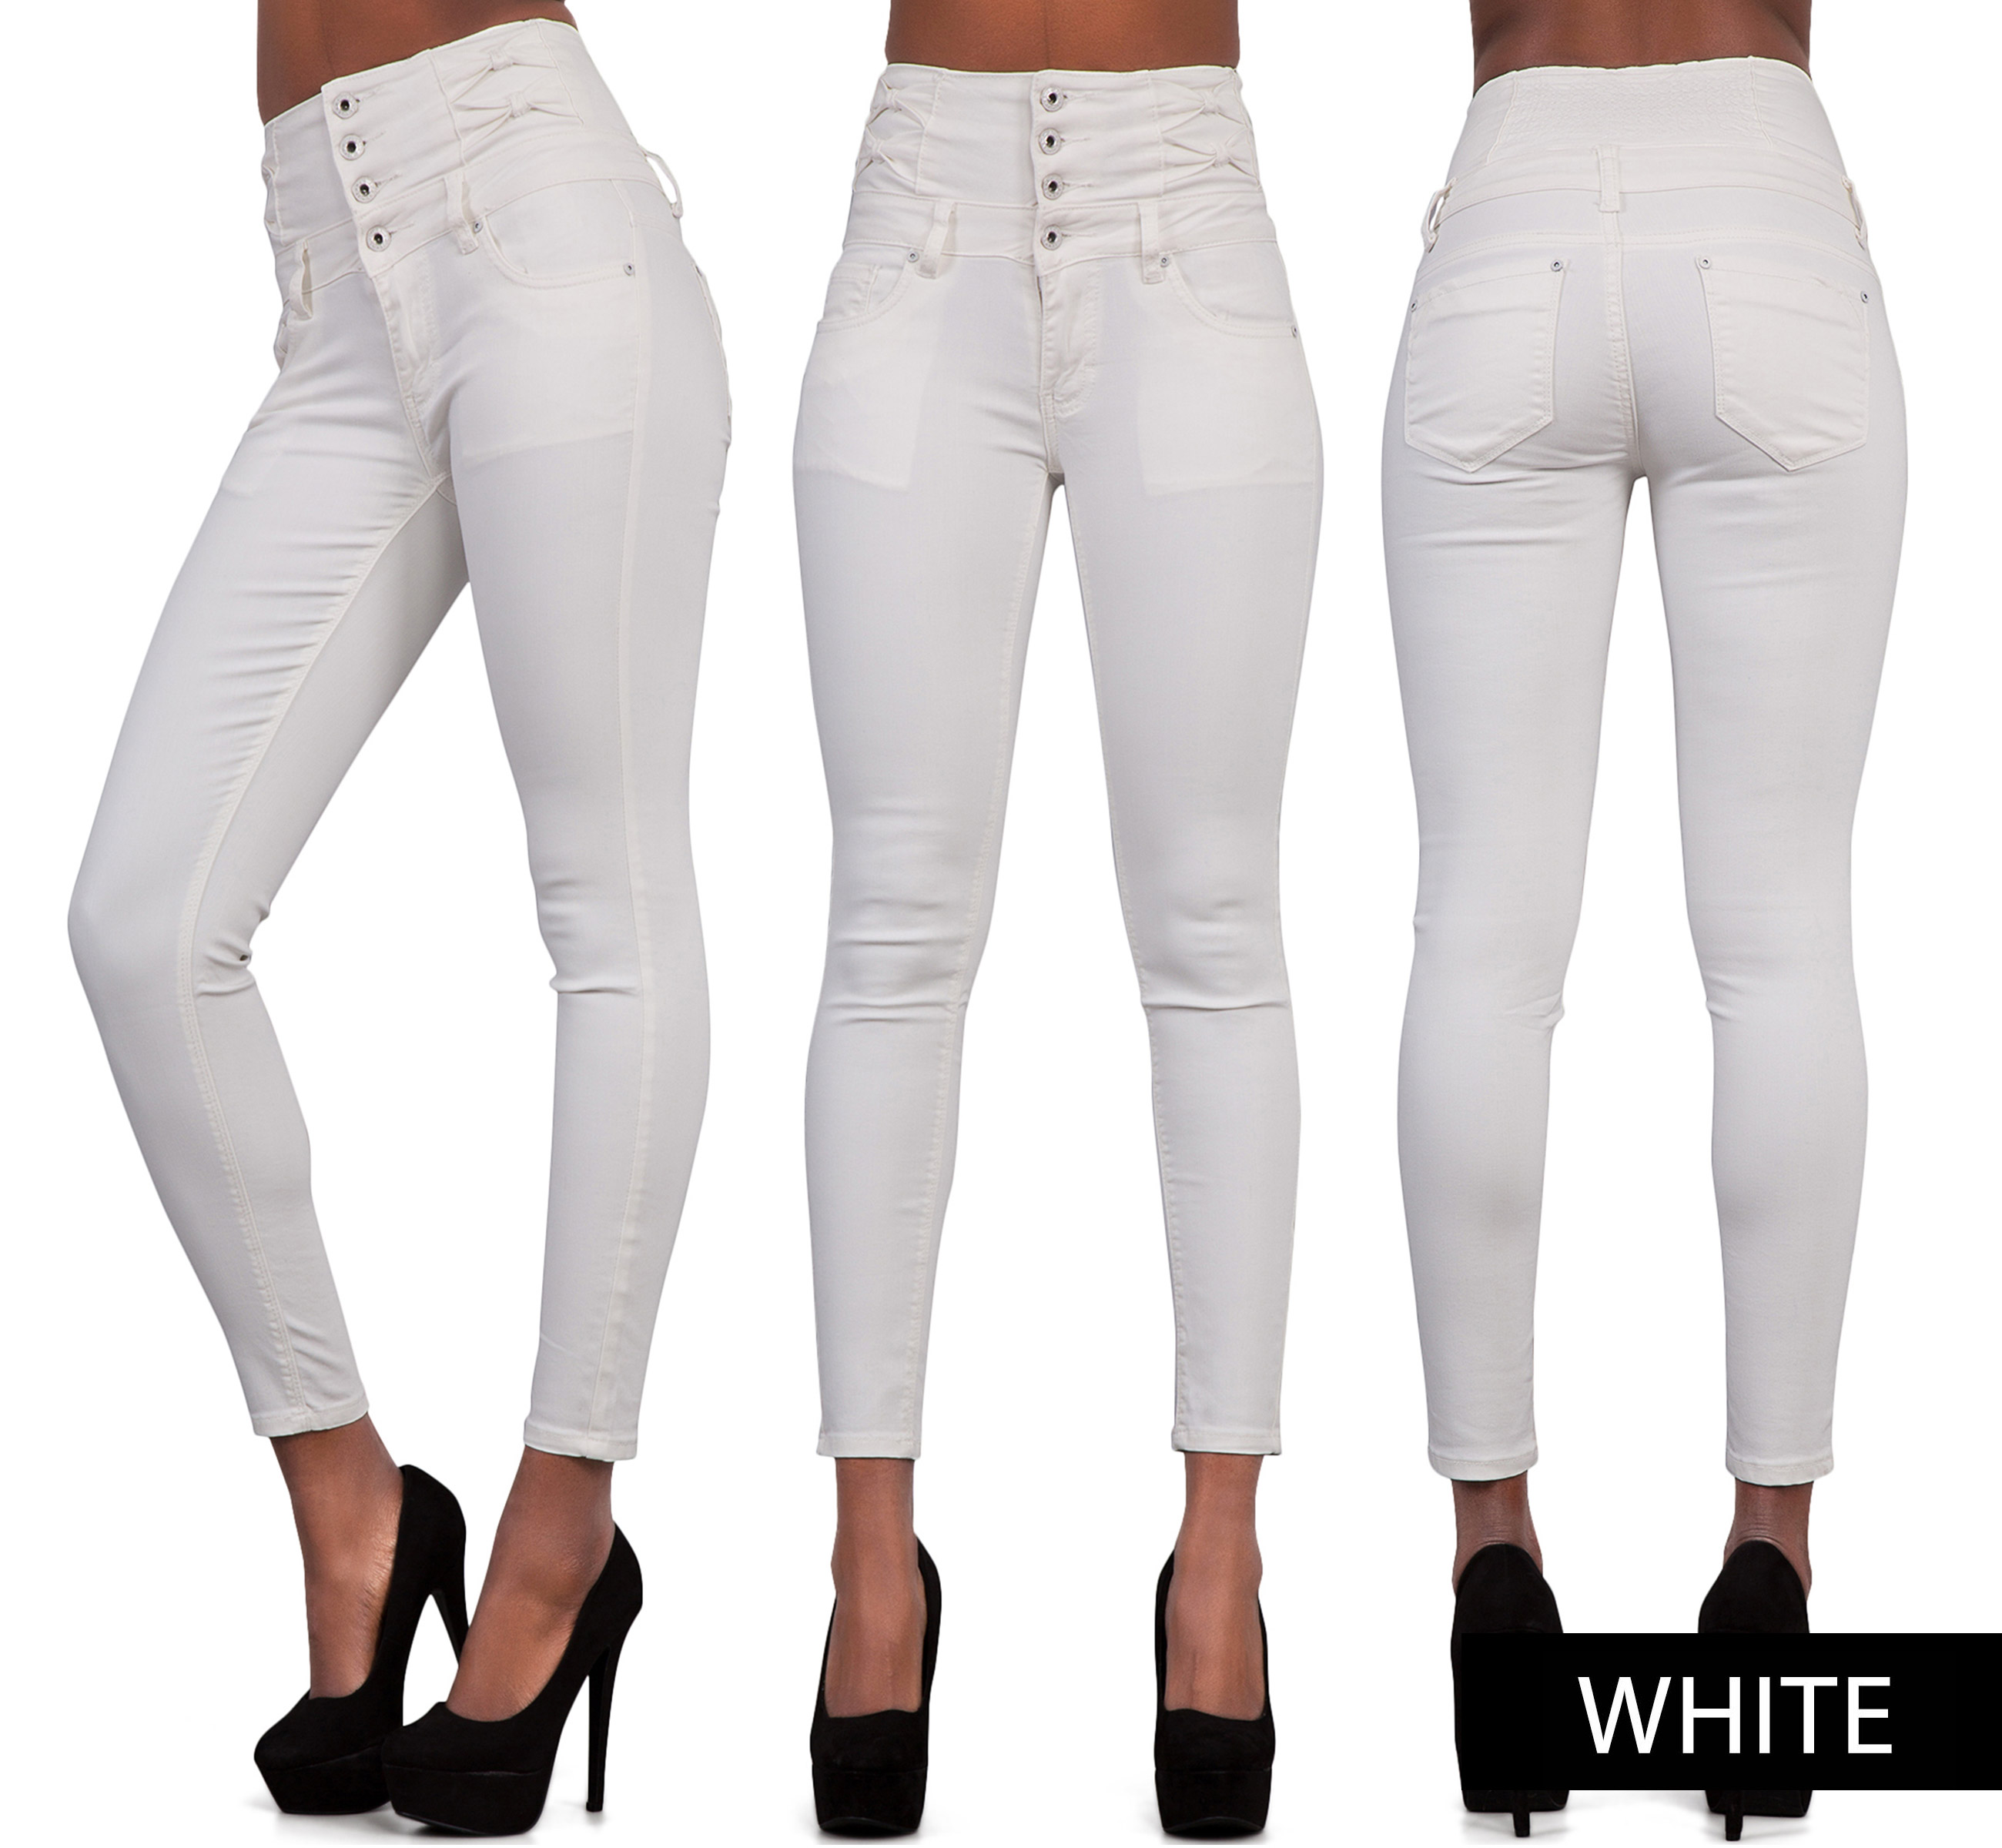 Waist and hip measurements can vary, in the same size jeans, based on where the pants sit. (high-waisted to super-low rise). To compare a pair of pants on eBay to a pair you own, match the rise first.